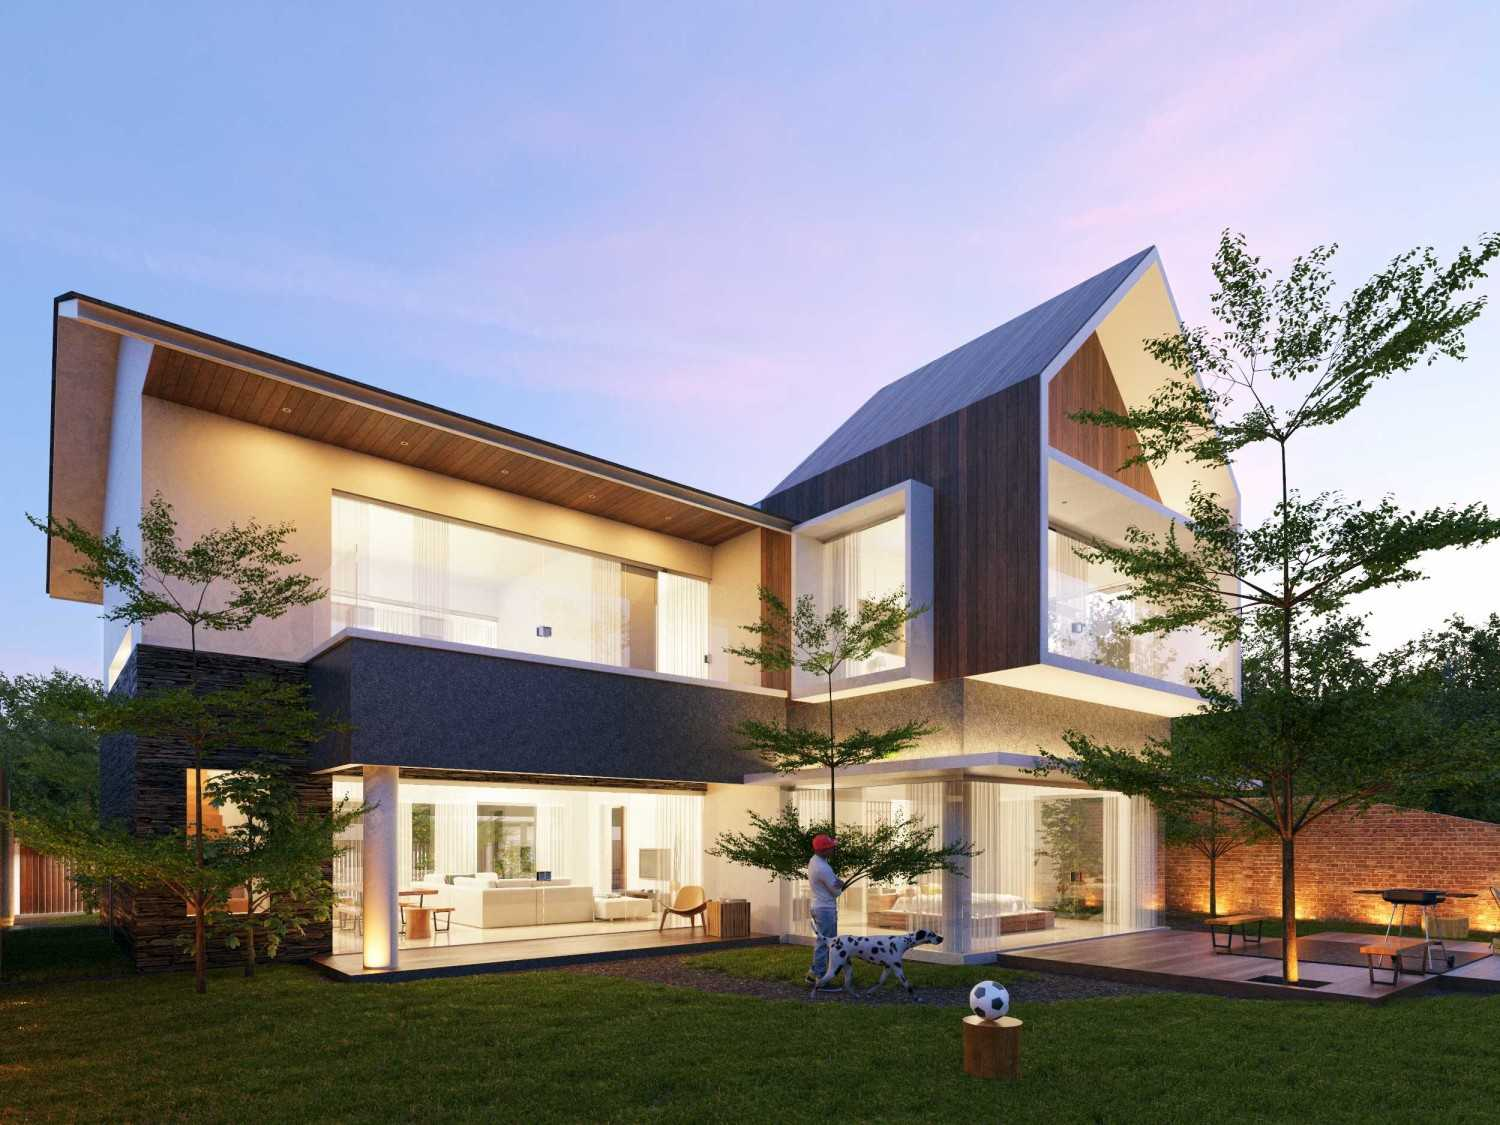 Jasa Arsitek Sony Budiono & Partner Architect Firm di Batam